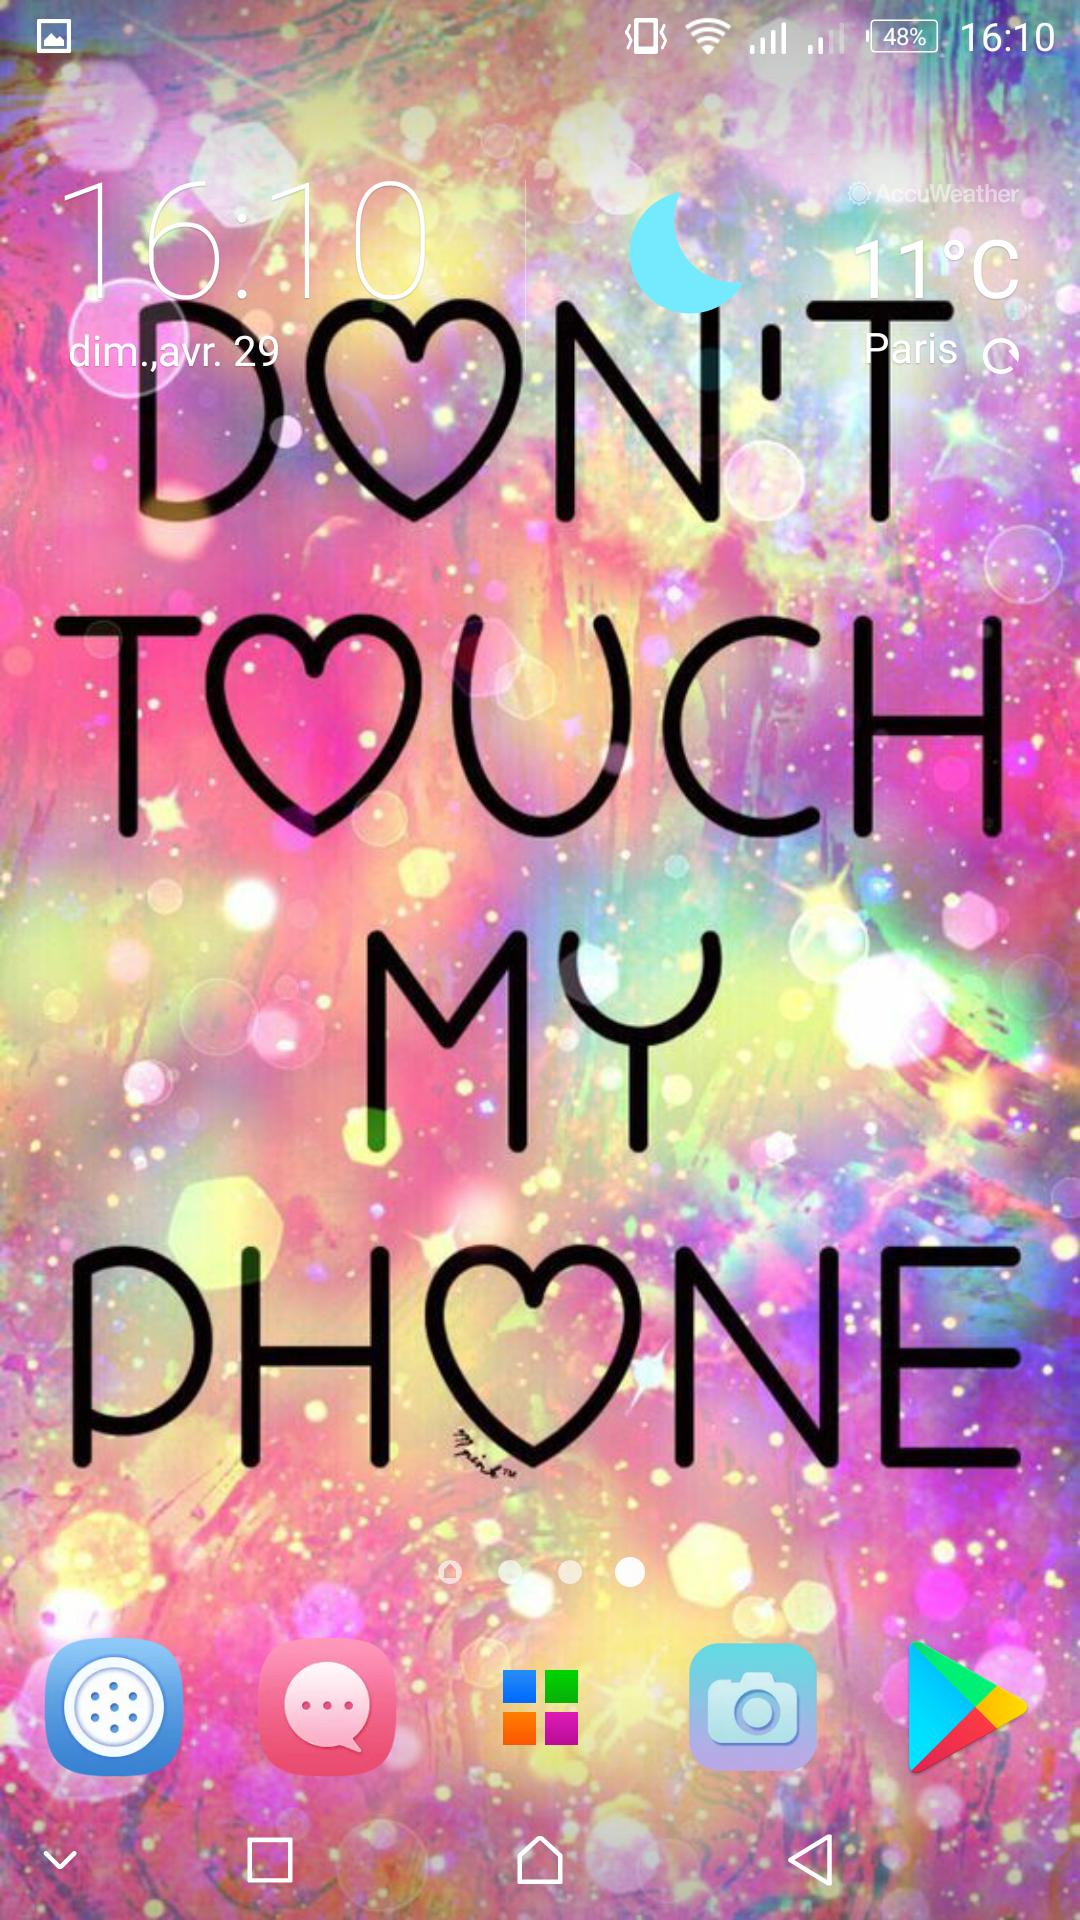 Girly Cute Backgrounds Kawaii Wallpapers For Android Apk Download